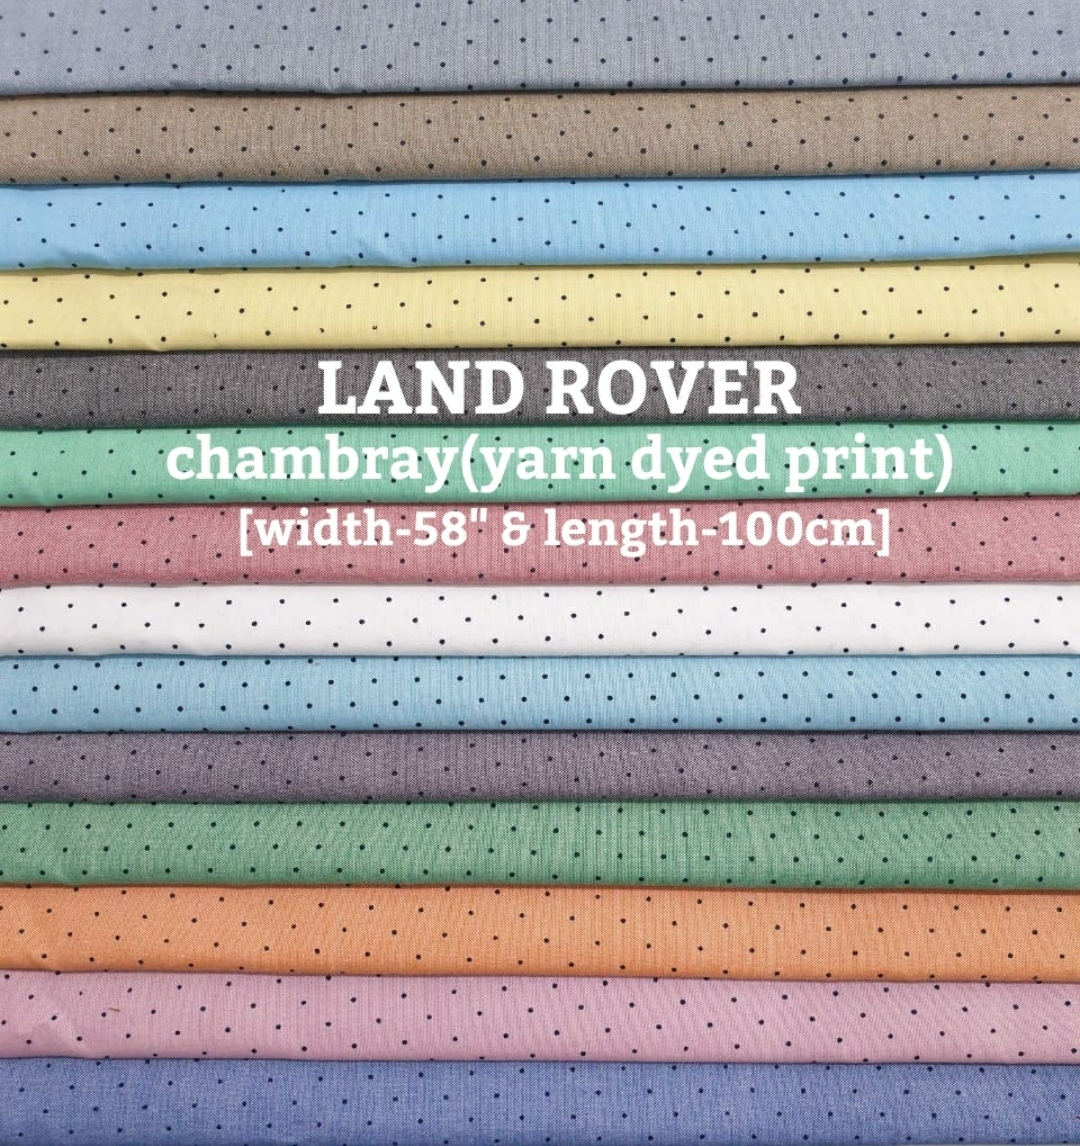 LAND ROVER chambray yarn dyed